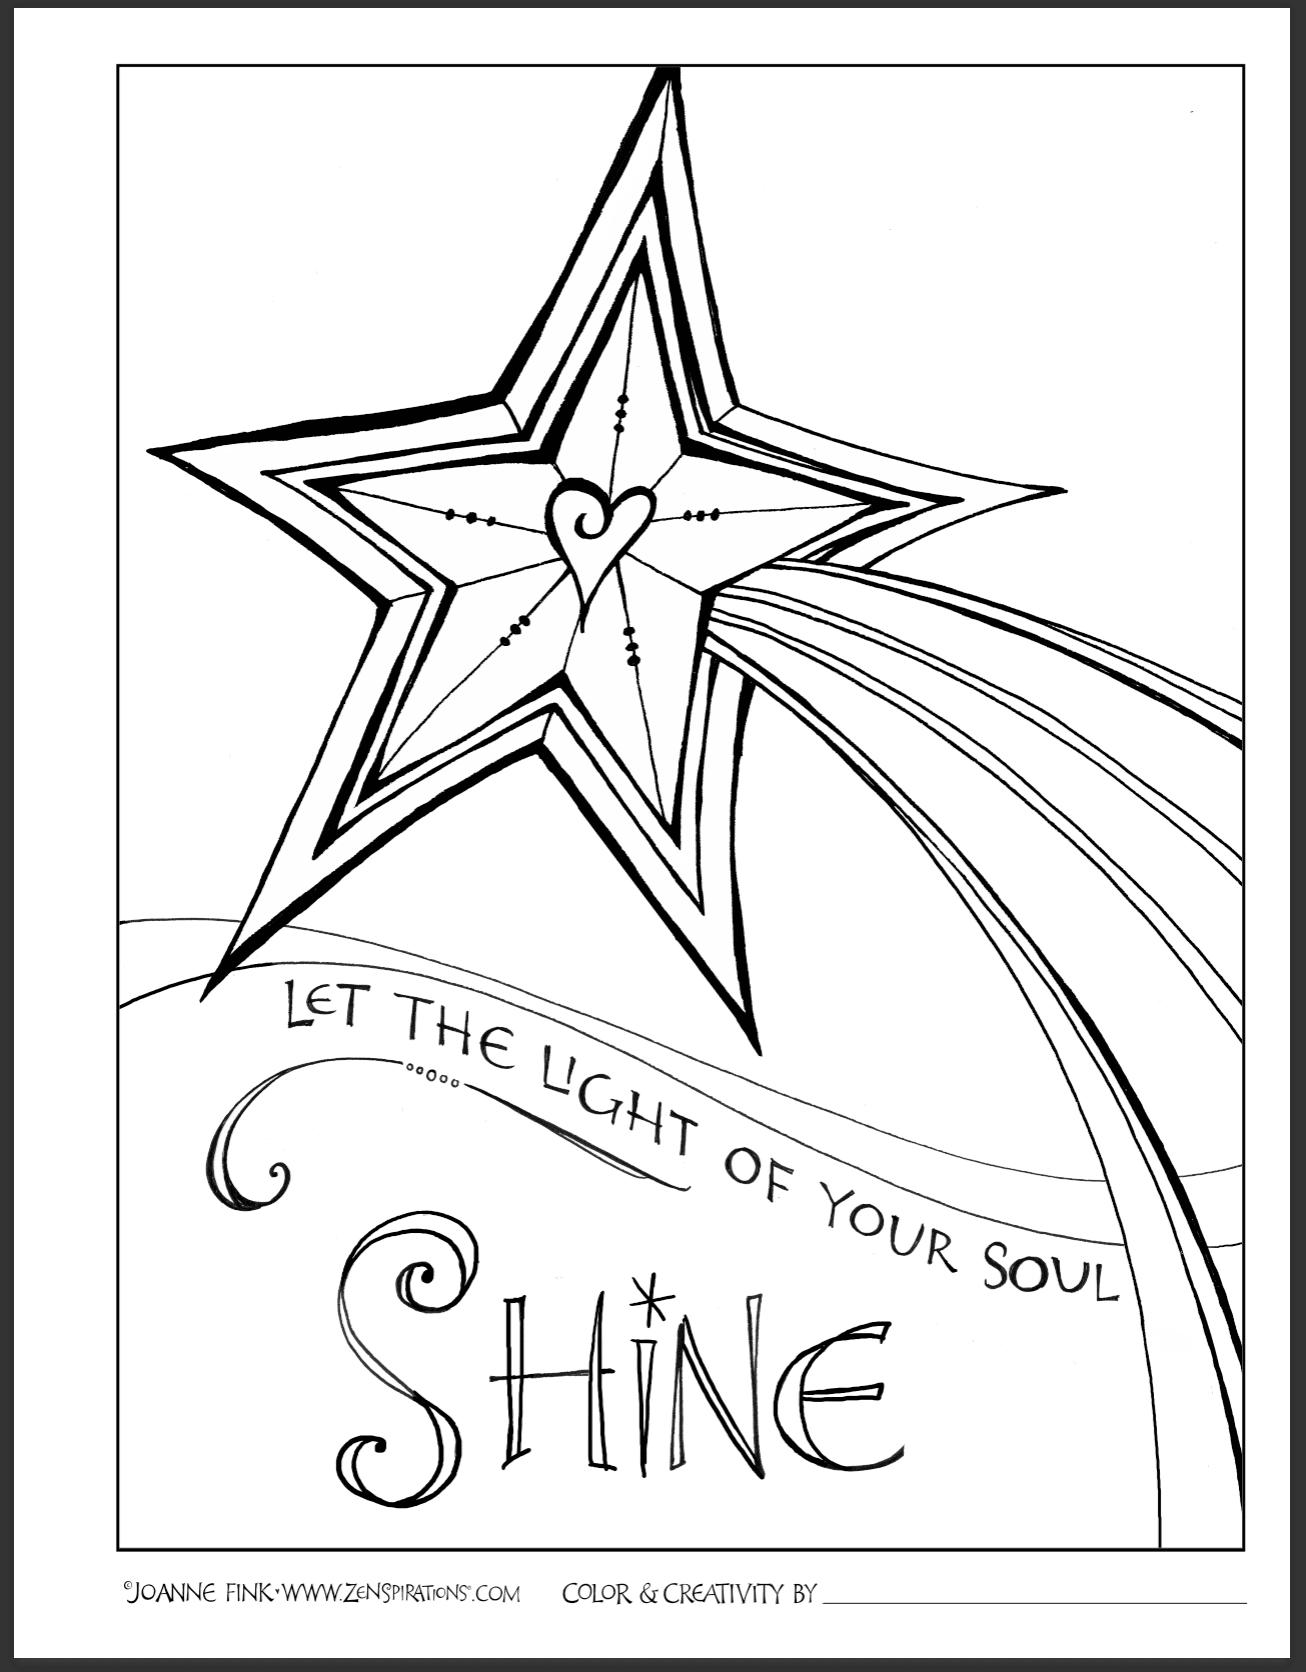 shine for jesus coloring pages | Praying for L.I.G.H.T. - Zenspirations